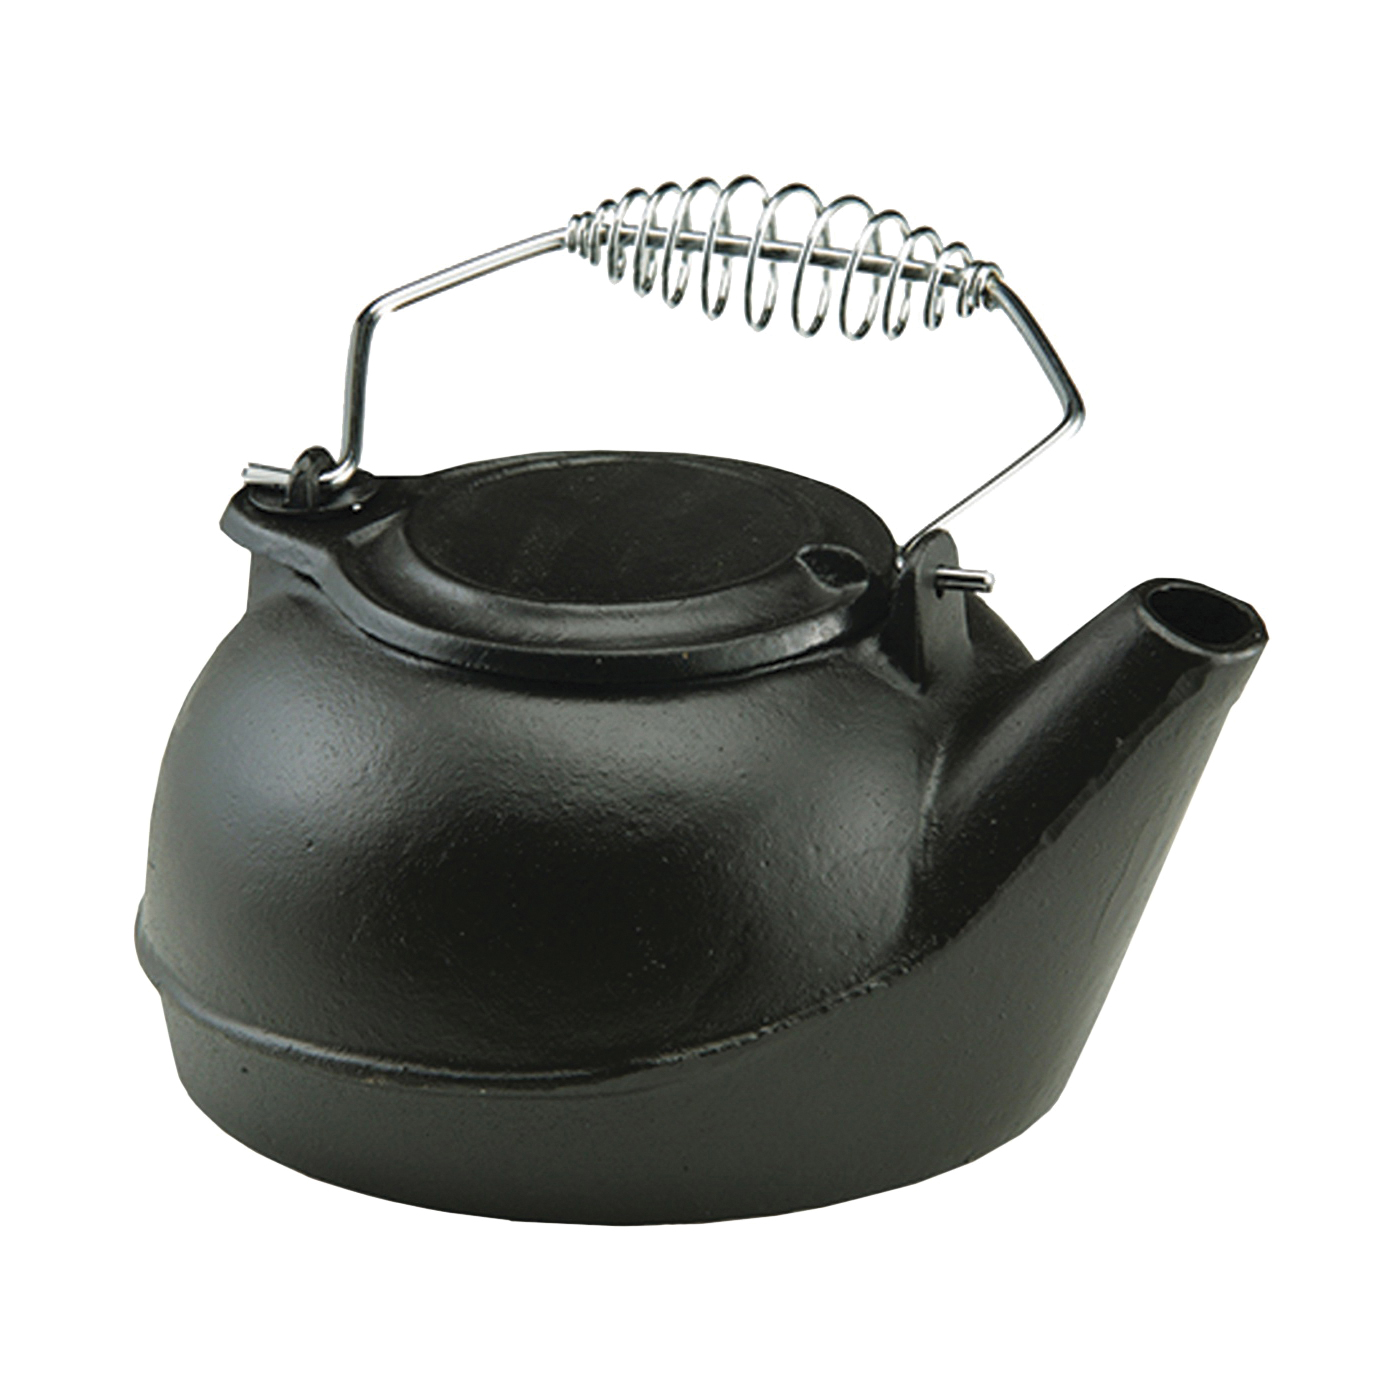 Picture of US STOVE TK-02 Tea Kettle, 3 qt Capacity, Spring-Loaded Handle, Iron, Black